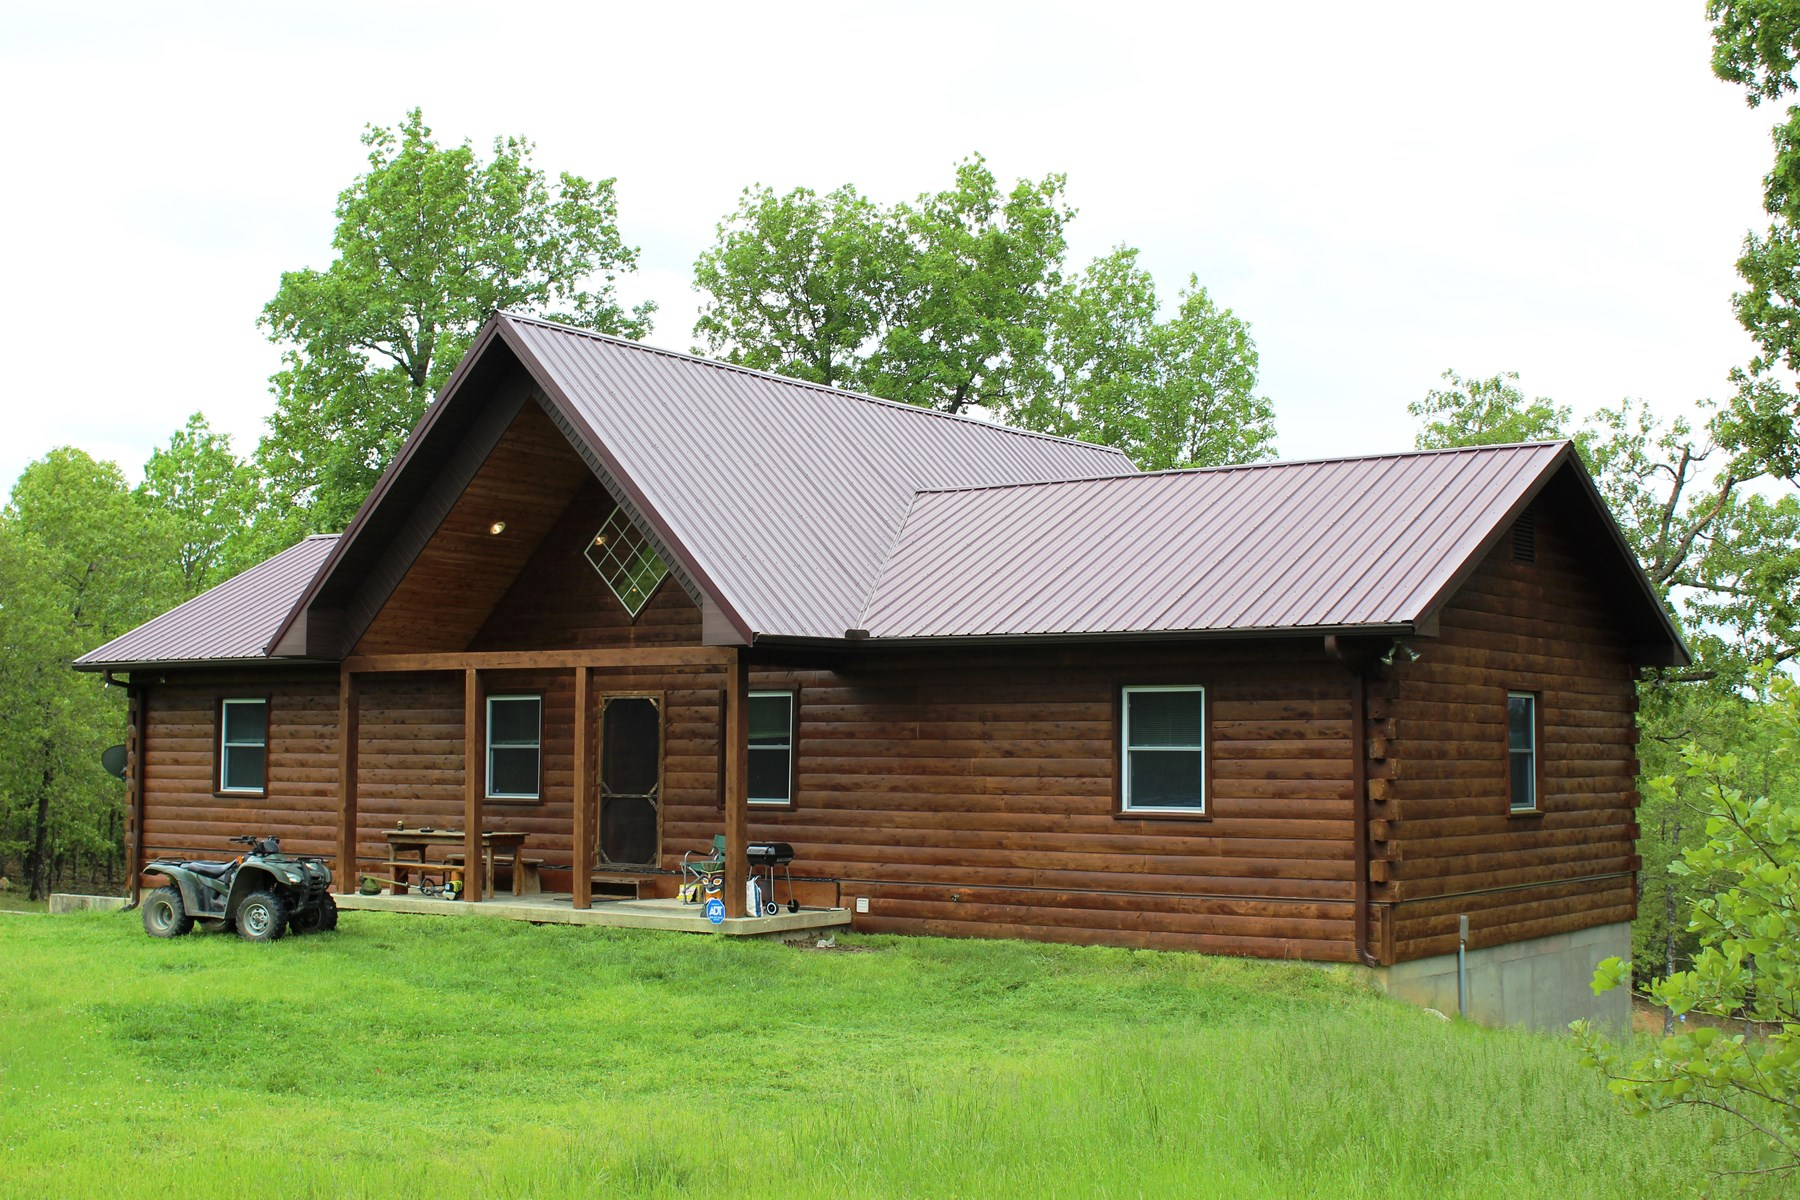 Log Home on 30 acres for sale Fulton County, Arkansas